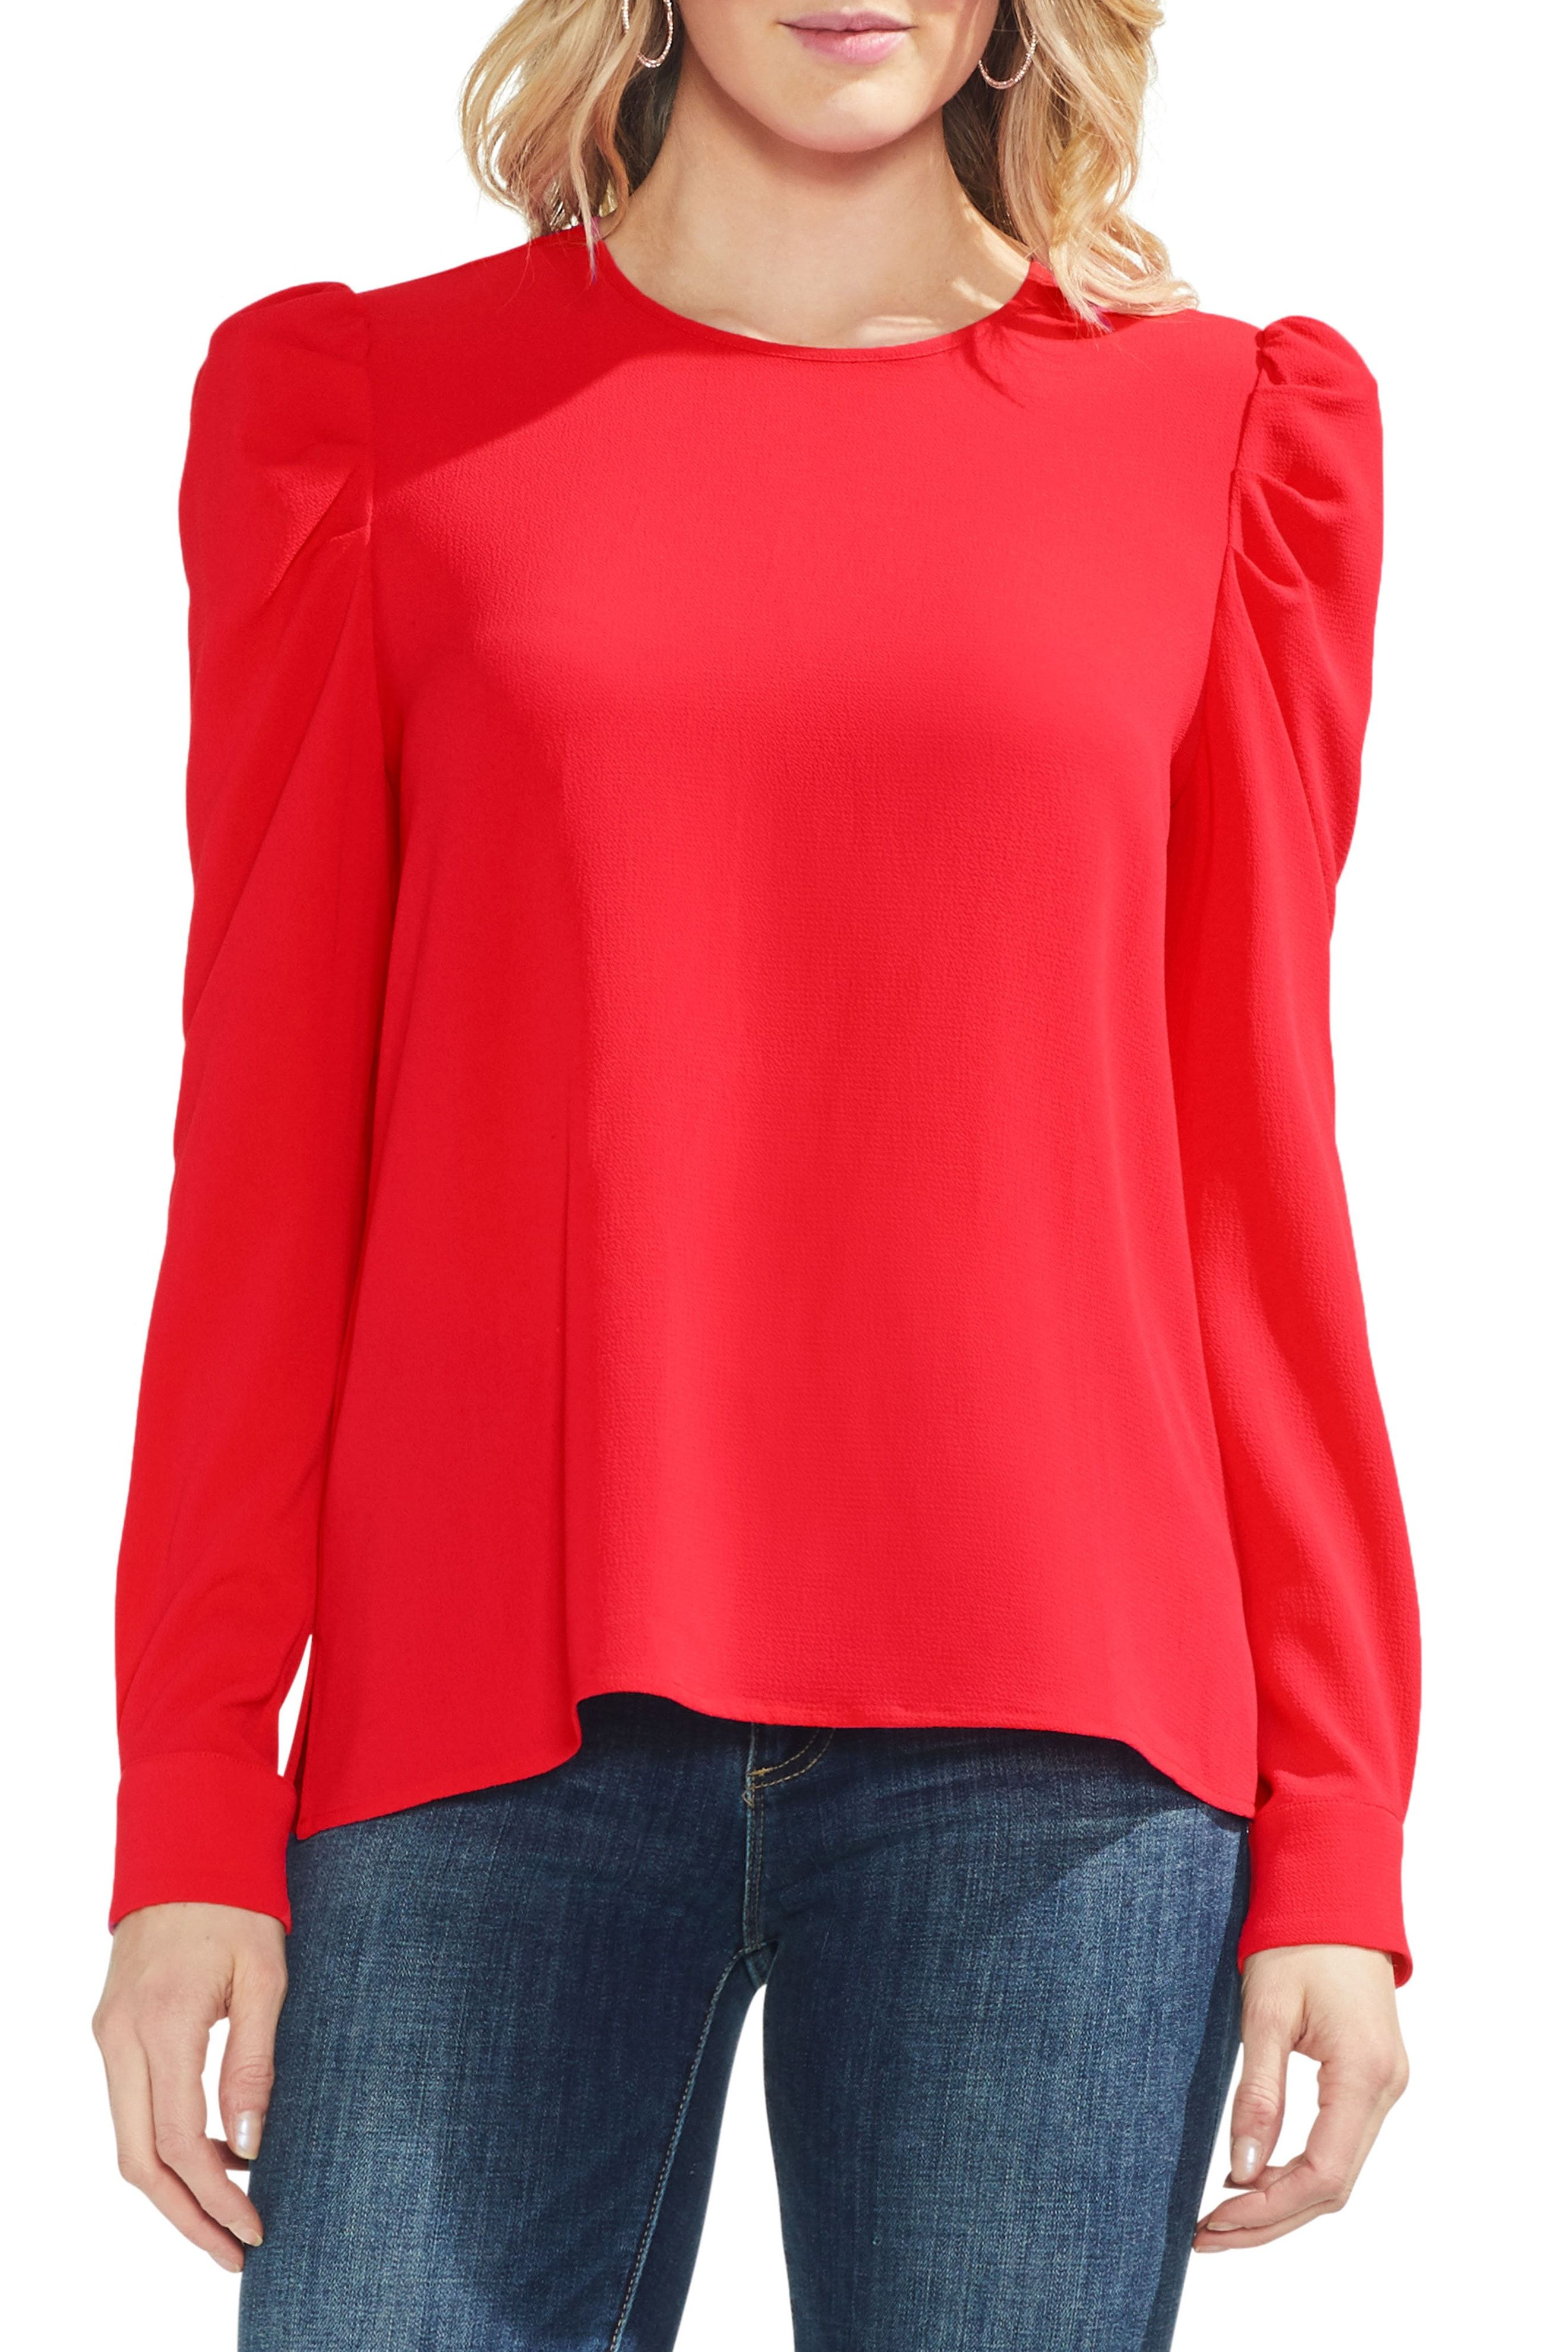 Party Casual Christmas Party Smart Casual For Women